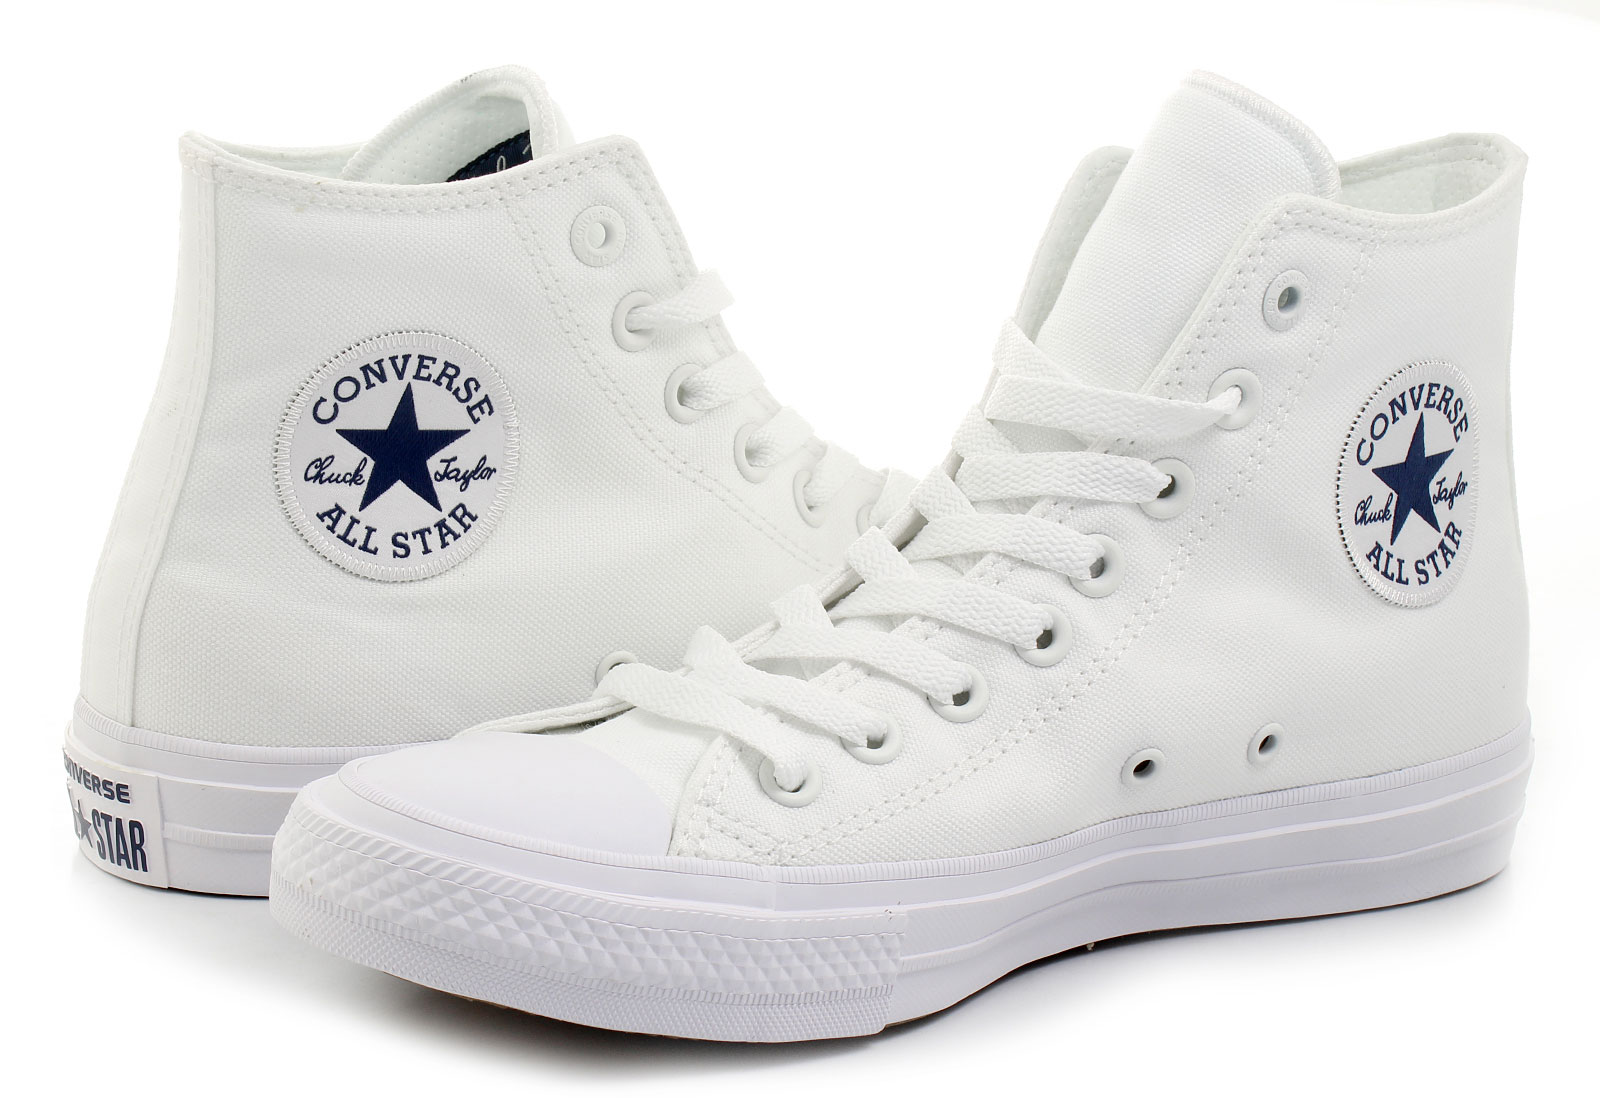 Converse Tenisky - Chuck Taylor All Star II Core Hi - 150148C ... 5cd3ca5e92b